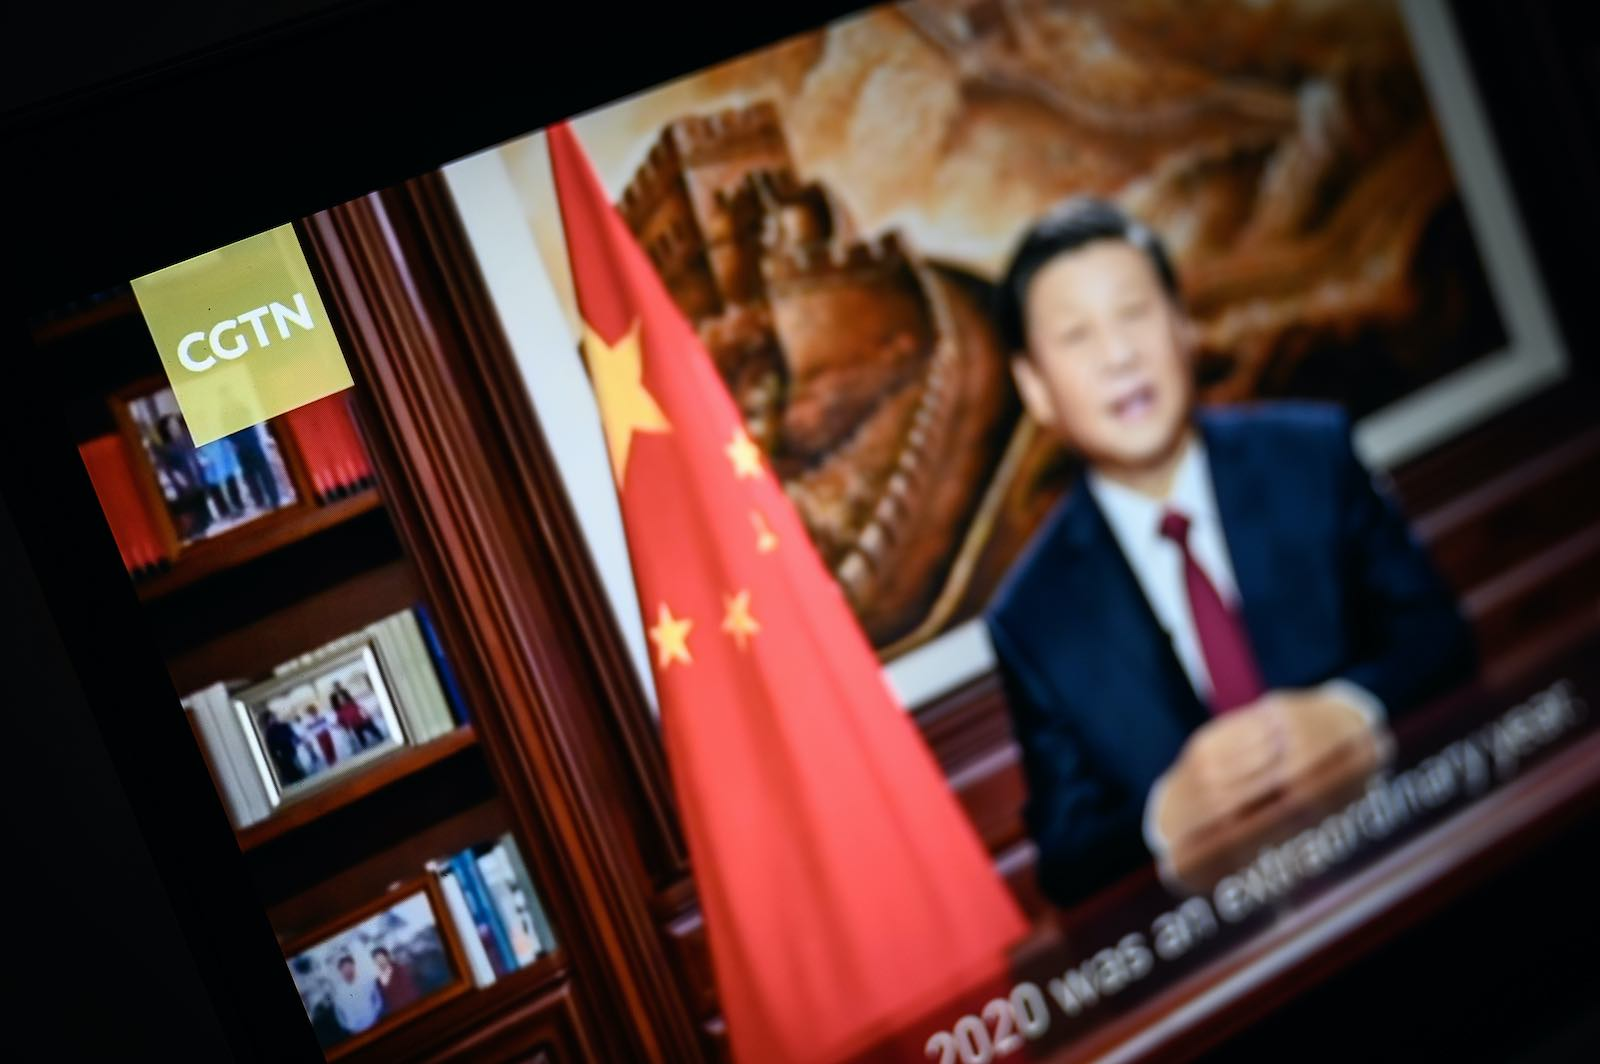 Xi Jinping's statements might take precedent but his reputation for dishonesty cast doubt over his words (Leon Neal/Getty Images)